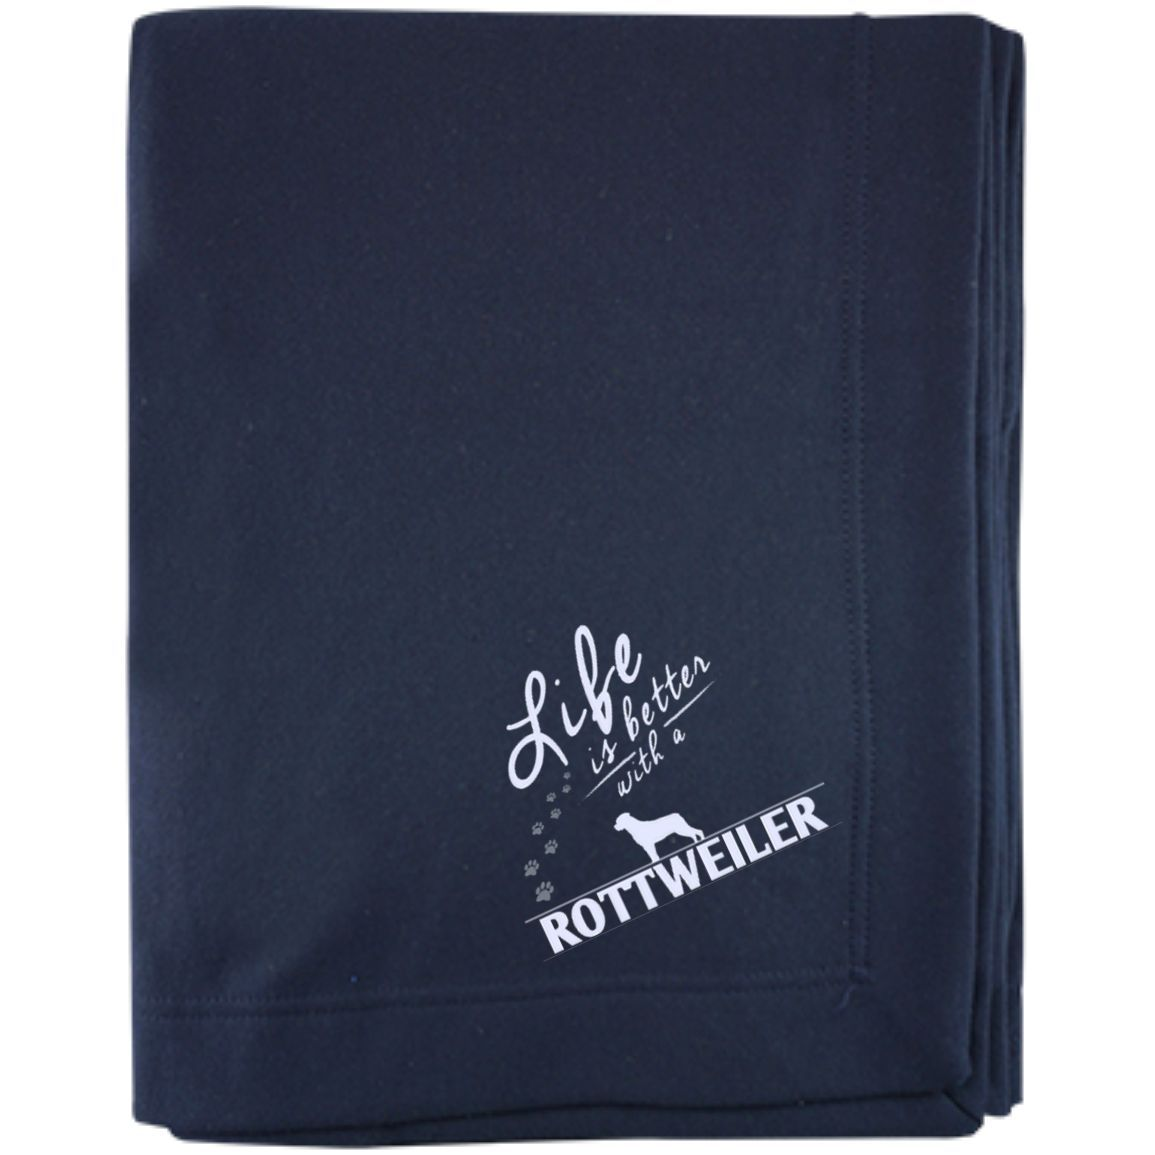 Rottweiler - Life Is Better With A Rottweiler Paws - Embroidered Sweatshirt Blanket